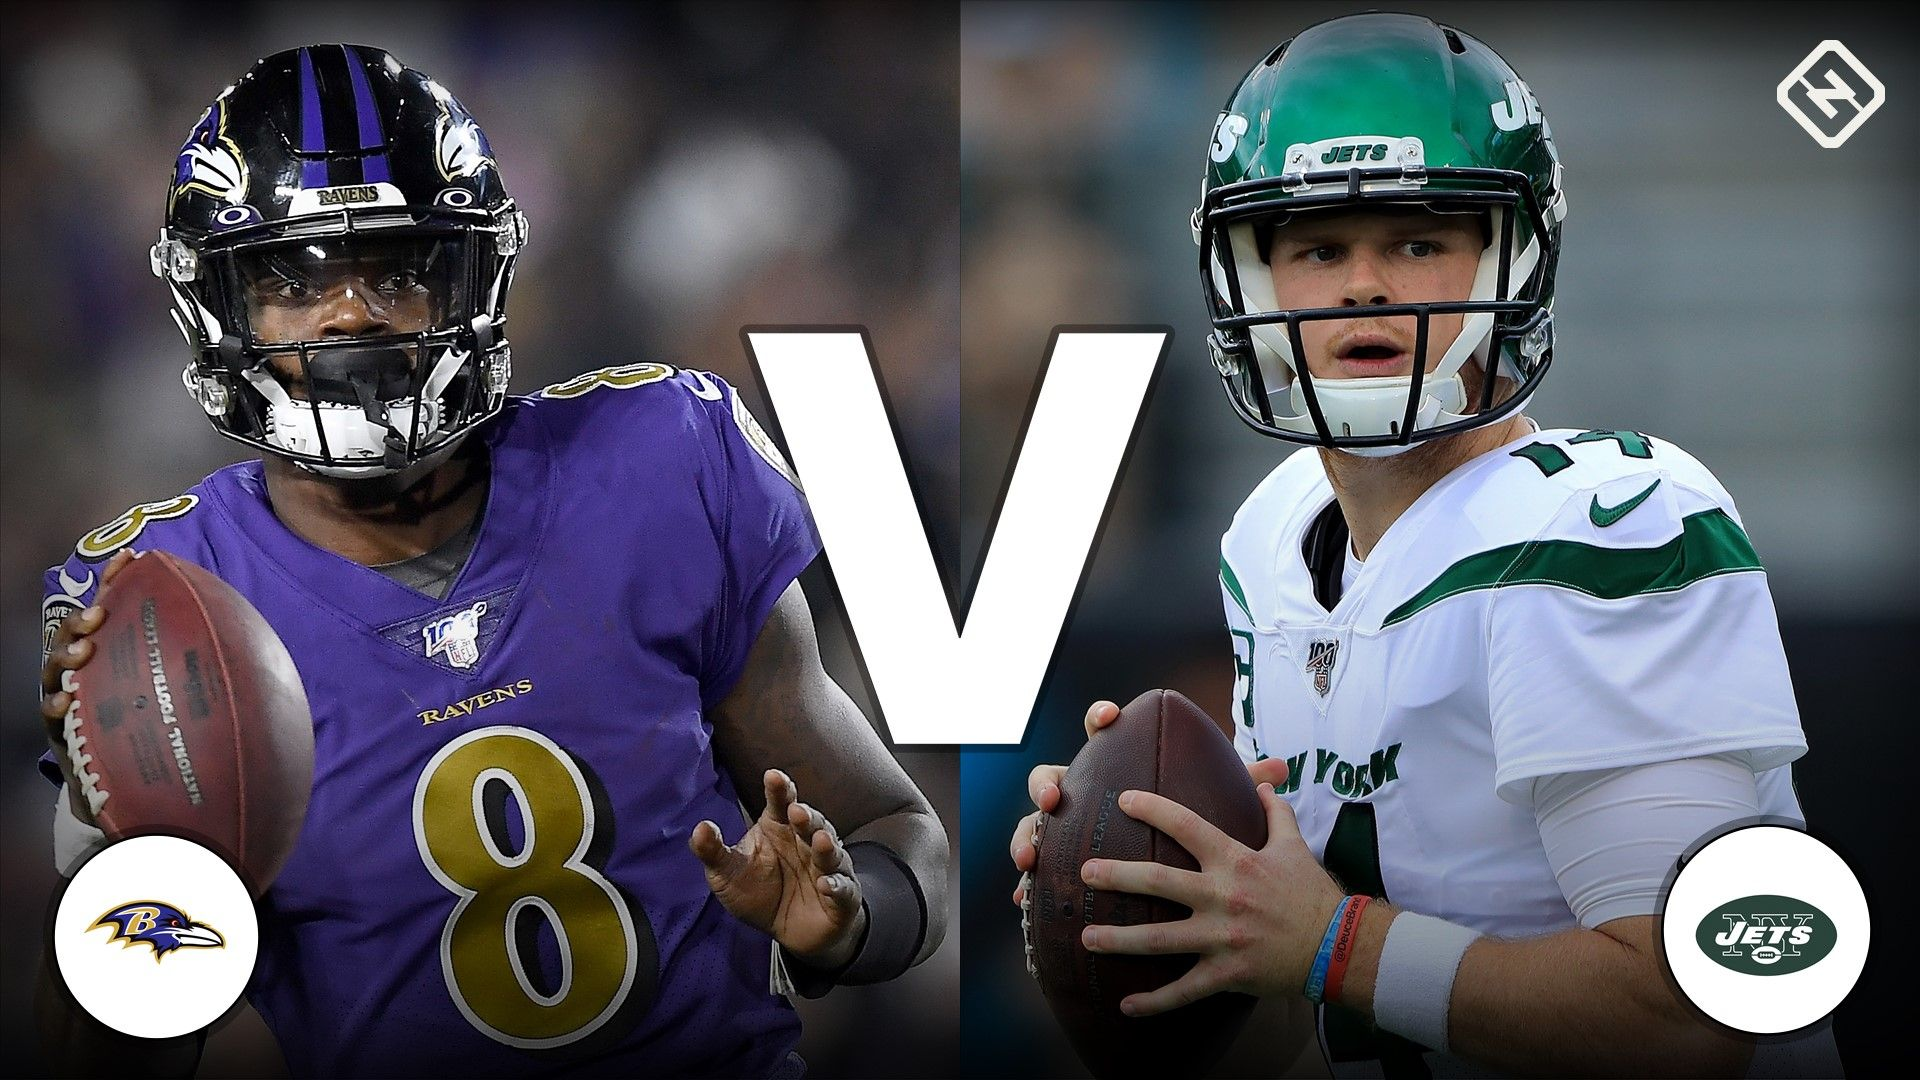 Tonight the NFL has a mismatch between one of the best